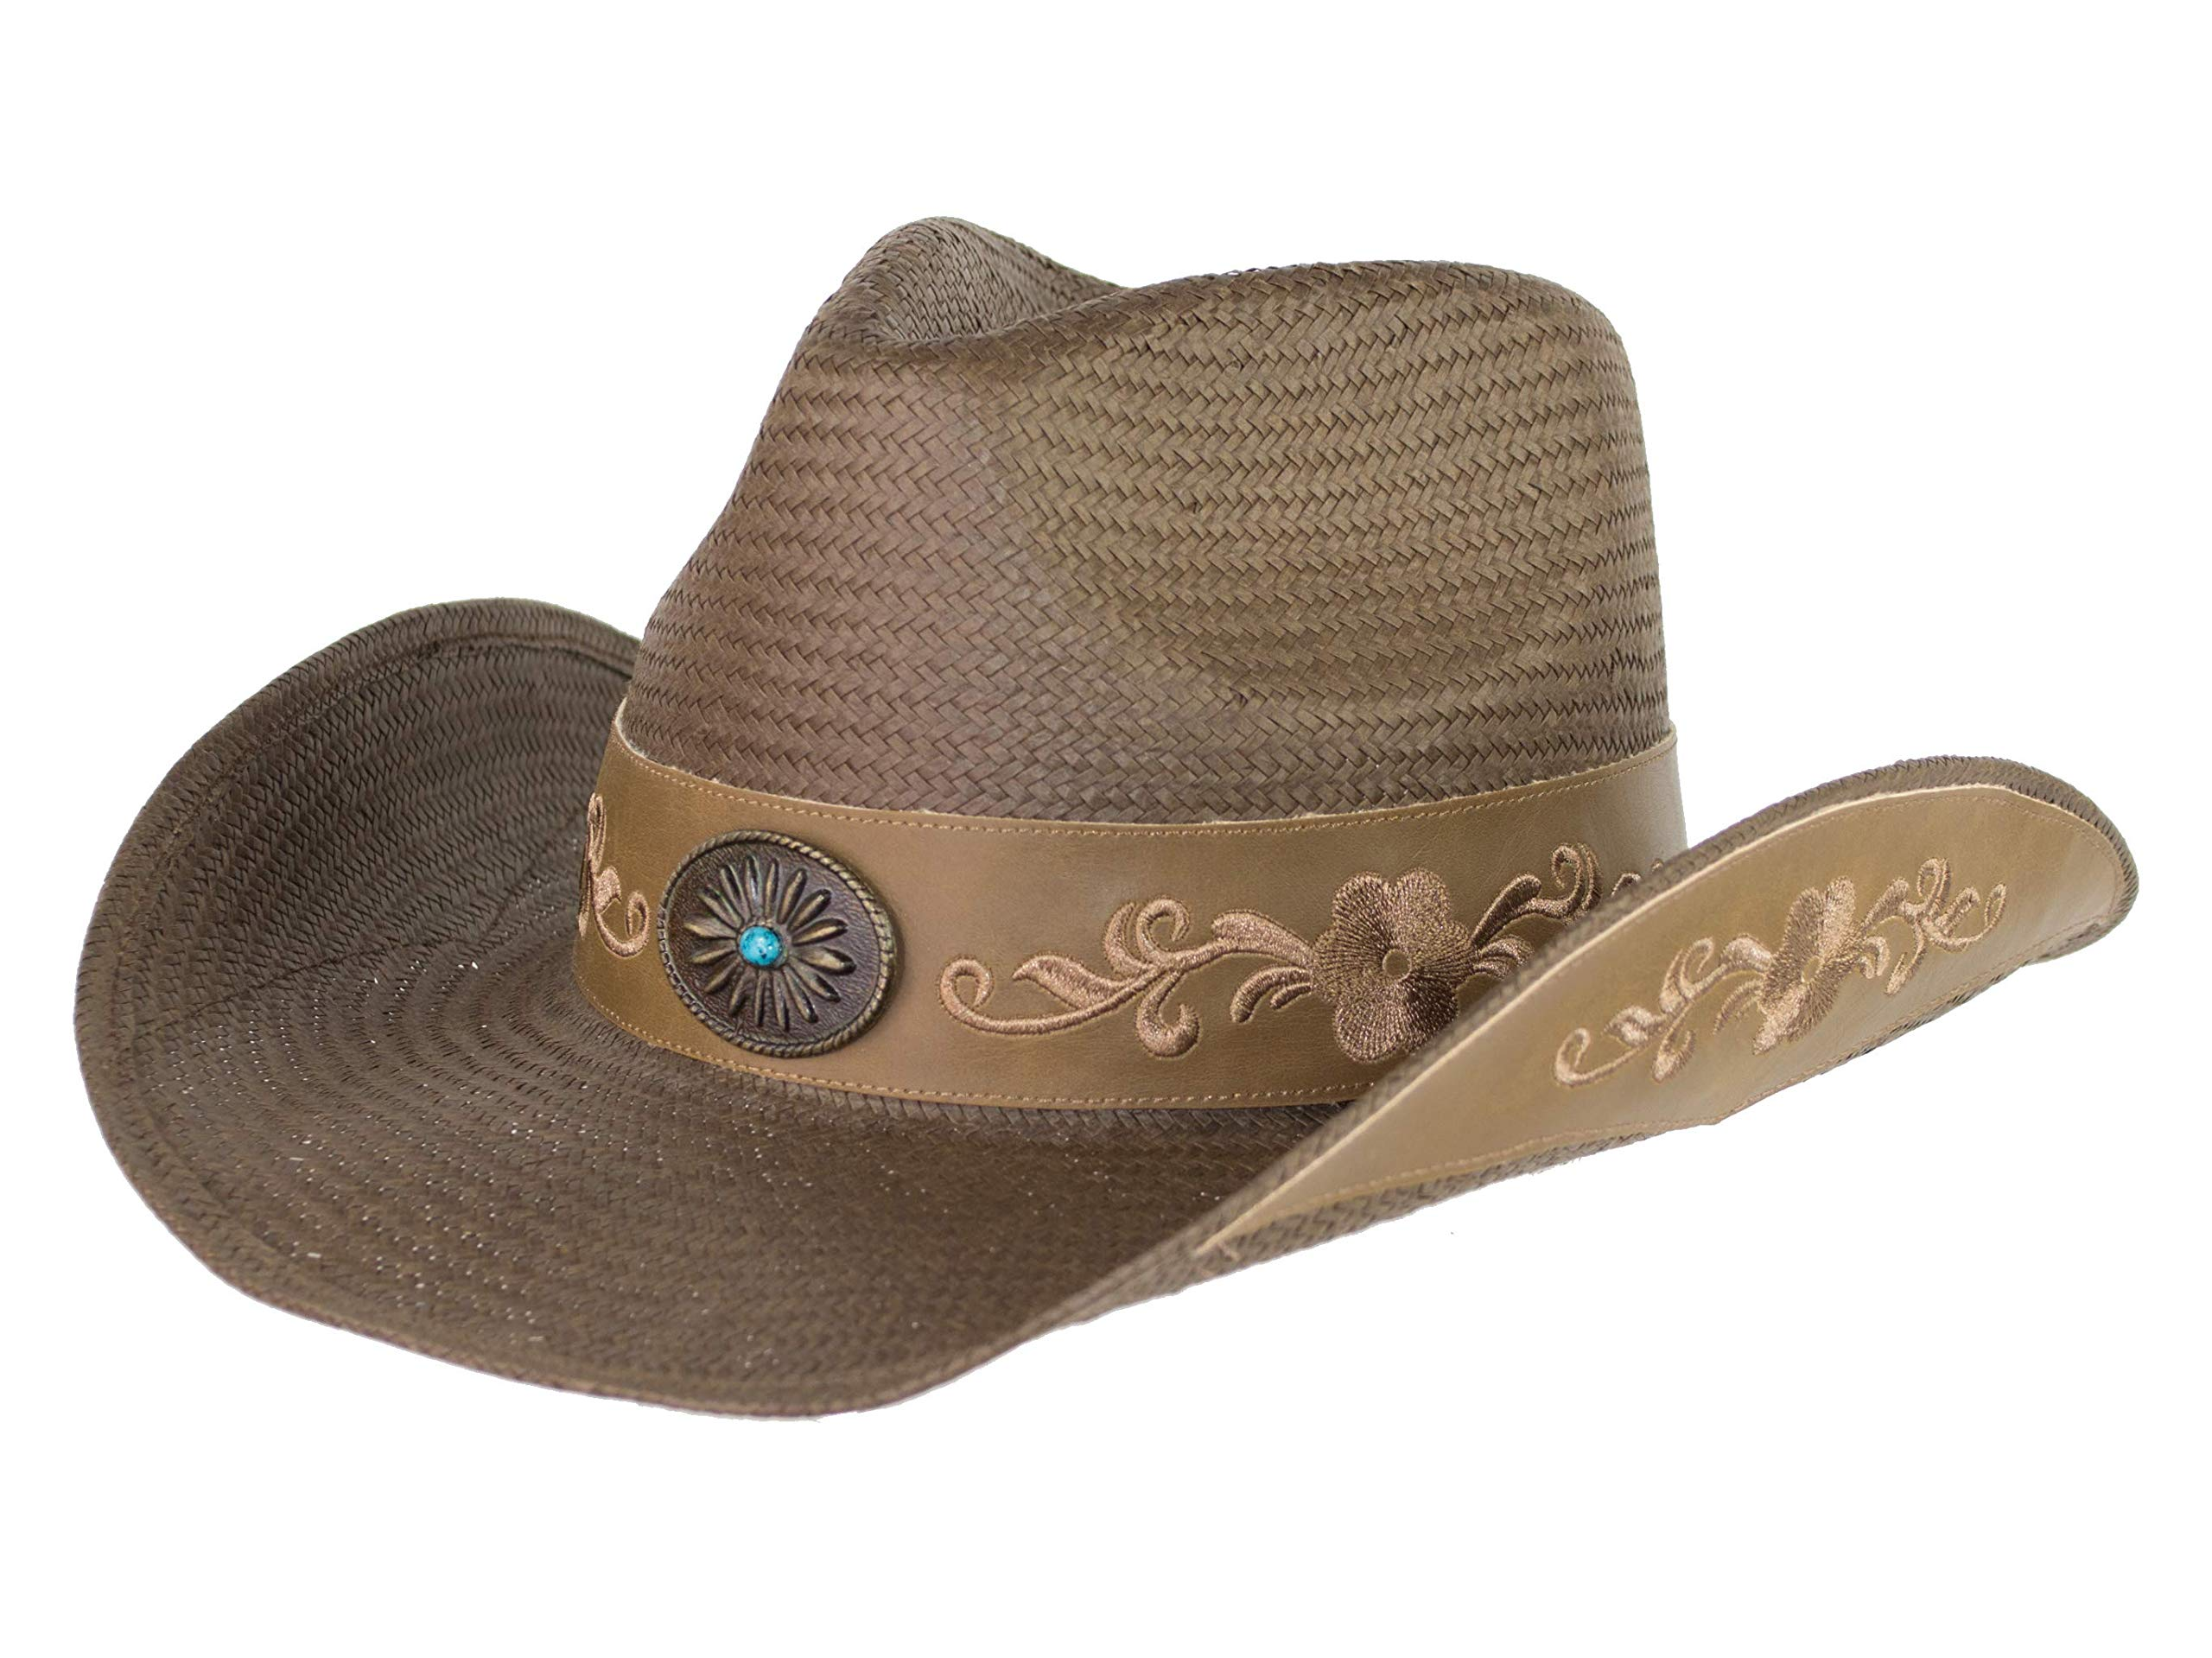 Brown Toyo Straw Cowboy Hat, Shapeable Flower Embroidered Cowgirl Hat w/Turquoise Concho, Medium